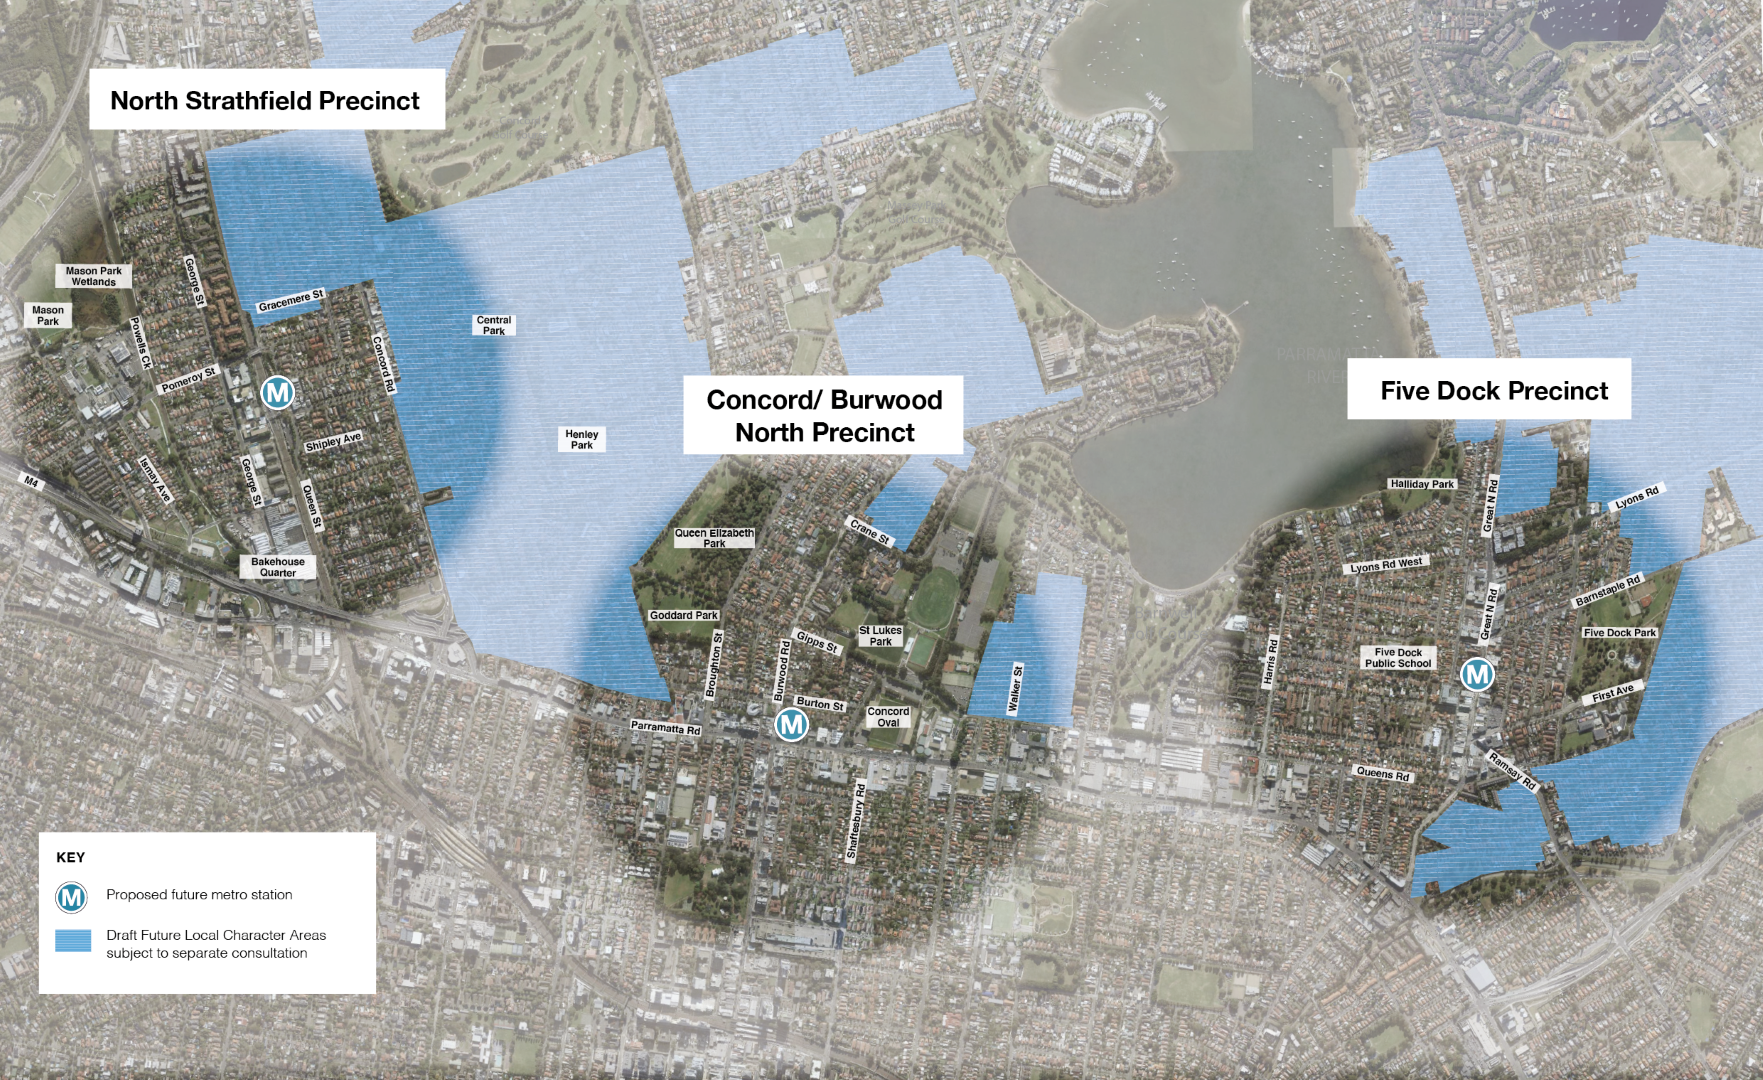 Three of the seven Sydney Metro West stations proposed by the NSW Government are located within the City of Canada Bay Local Government Area (LGA). These will be in North Strathfield, Five Dock and Concord/Burwood North.